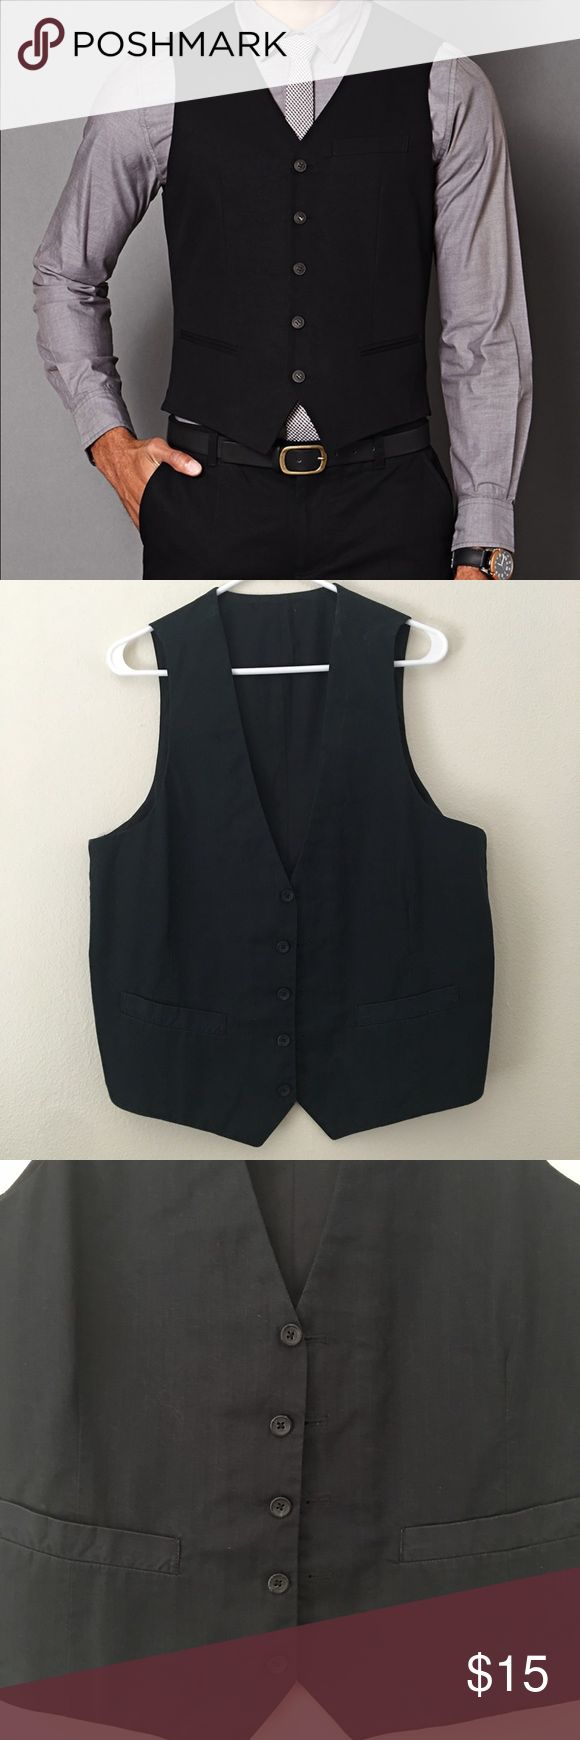 Men's casual vest Men's casual vest from Gap. Black cotton blend. First photo for styling suggestion only. A little dusty and faded from being in storage. Price reflects condition. No trades. No PayPal. GAP Jackets & Coats Vests